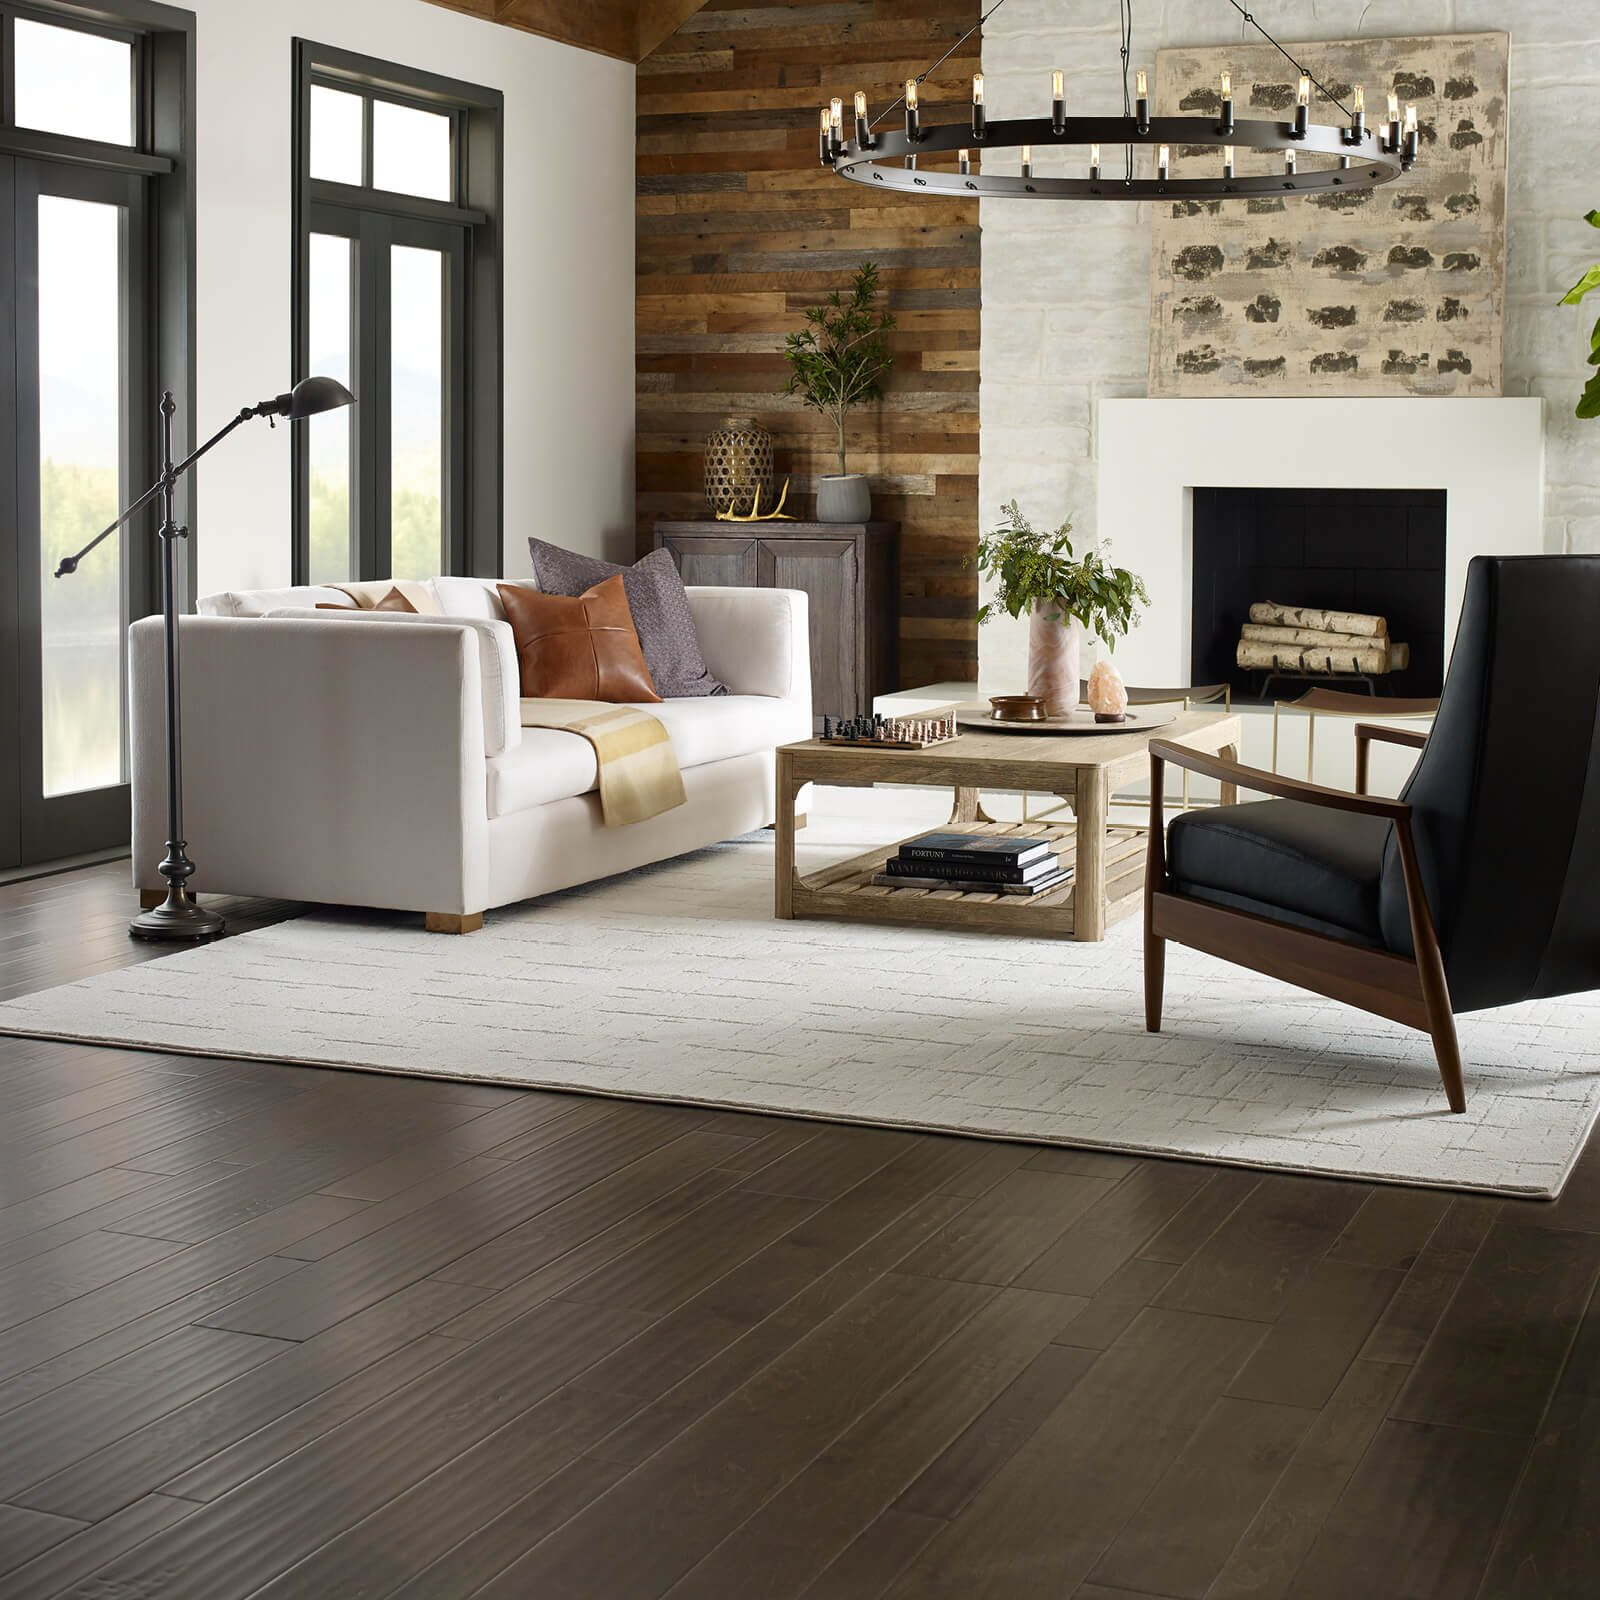 Shaw hardwood flooring | Jack's Tile And Carpet